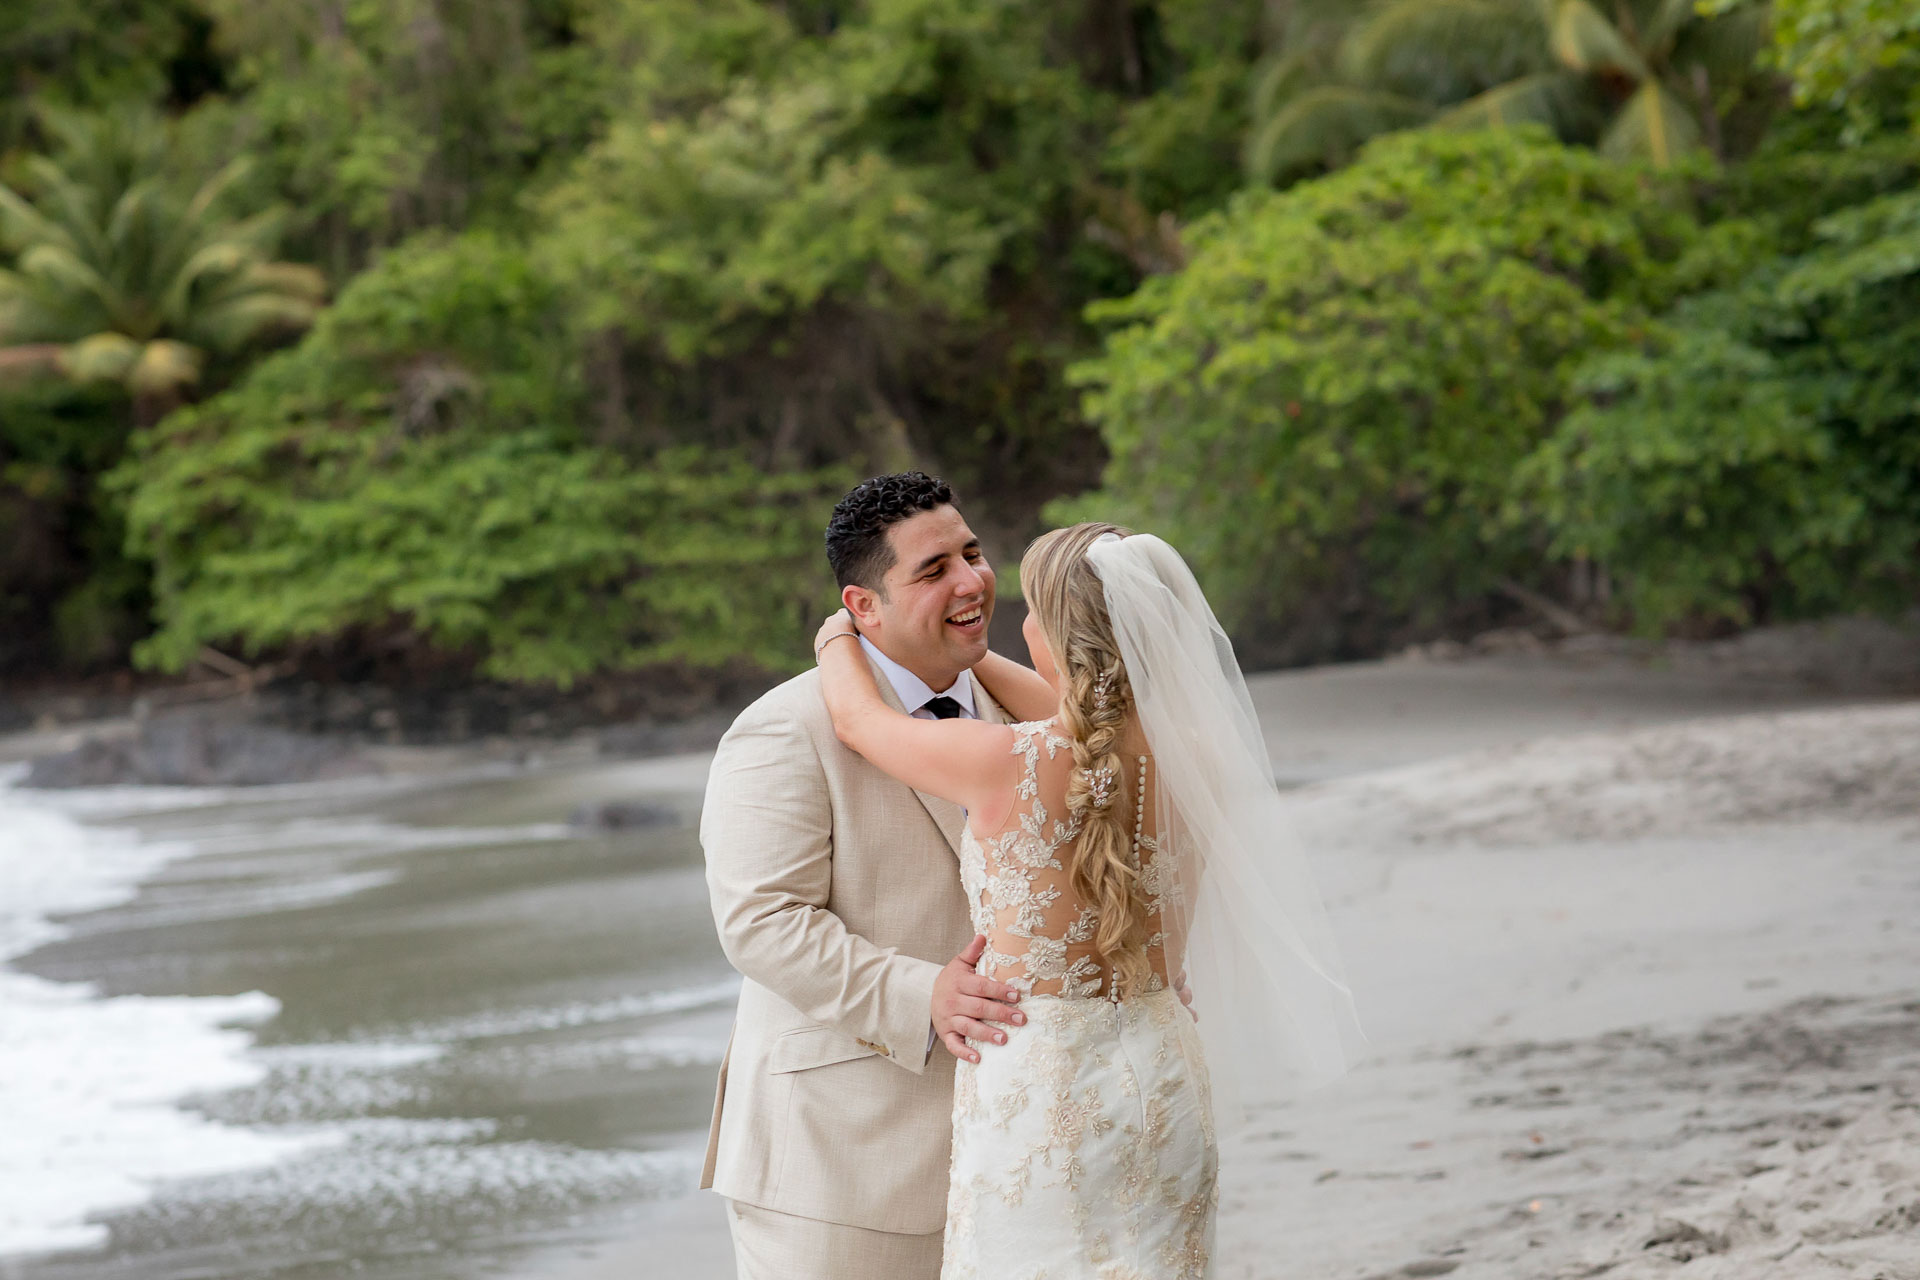 Beach couple elopement portrait from Costa Rica | The newlyweds make the most of their beach wedding surroundings